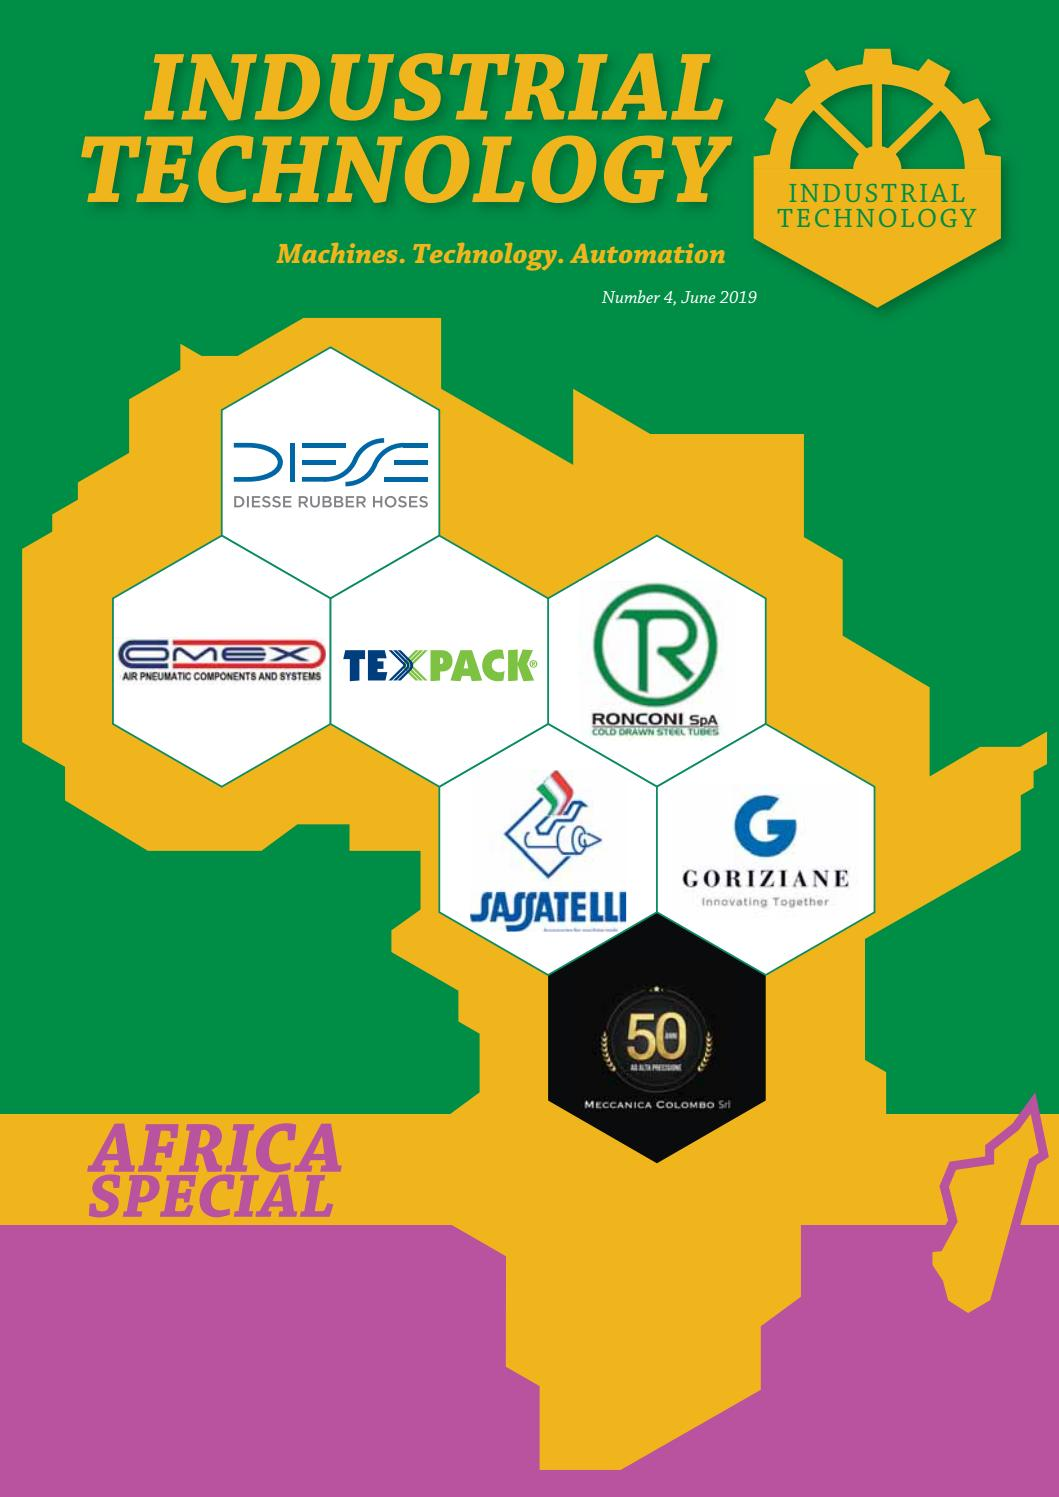 Industrial Technology AFRICA SPECIAL 2019 by Industrial